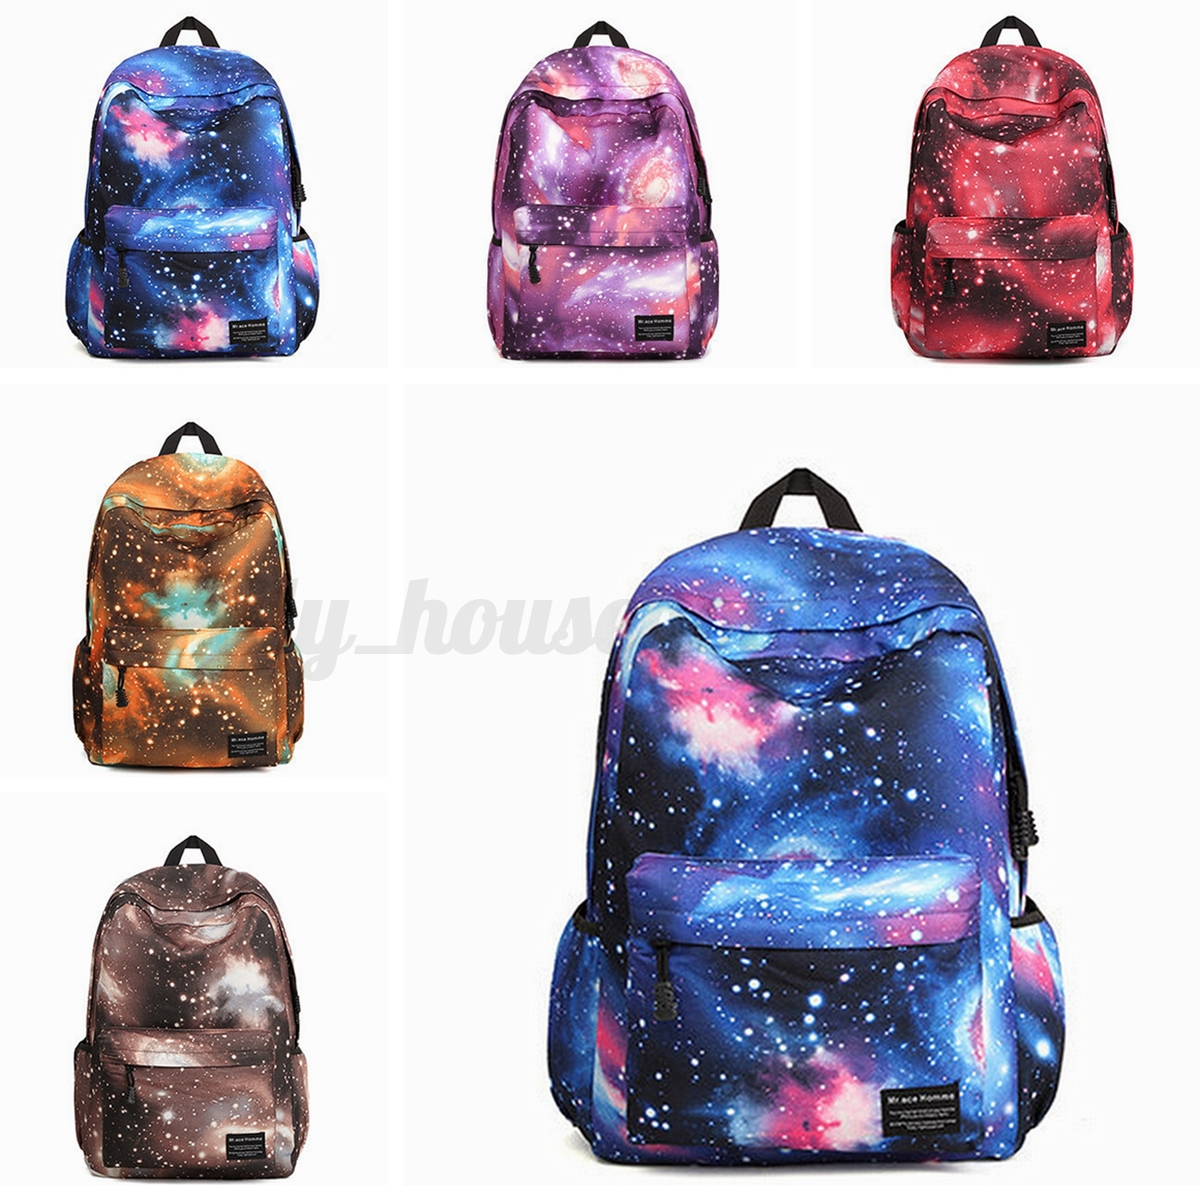 galaxy rucksack reisetasche schule schulrucksack schulter tasche damen m dchen ebay. Black Bedroom Furniture Sets. Home Design Ideas